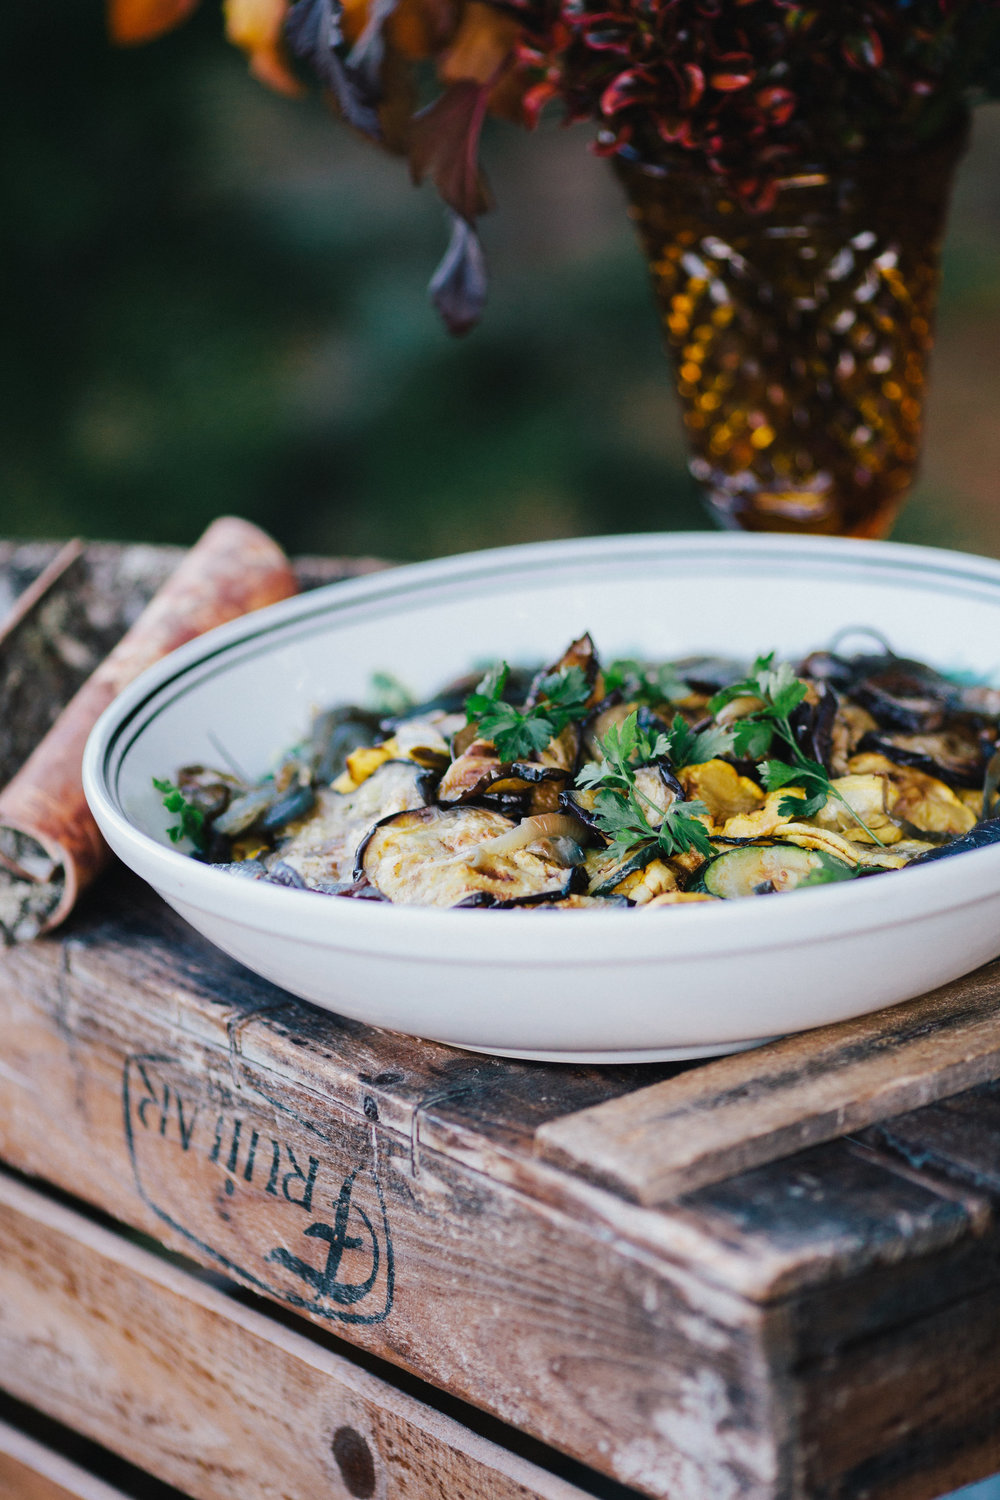 Grilled yellow and green zucchini, and egg plant salad